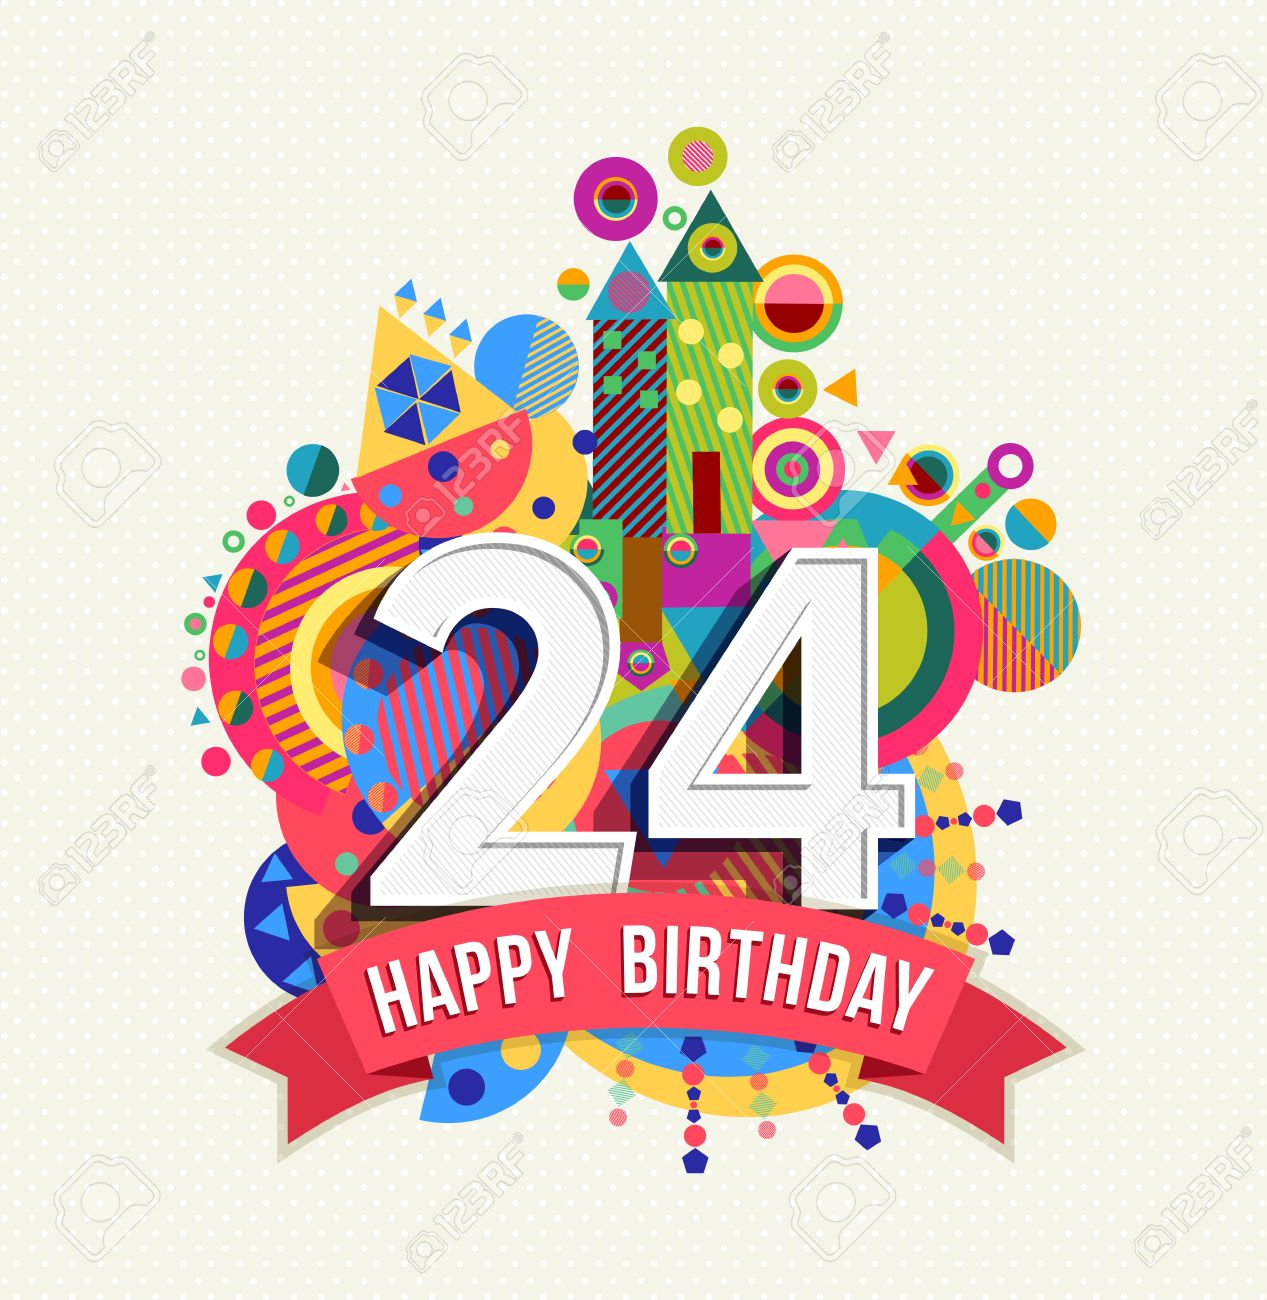 Happy Birthday Twenty Four 24 Year Royalty Free Cliparts Vectors And Stock Illustration Image 52425940